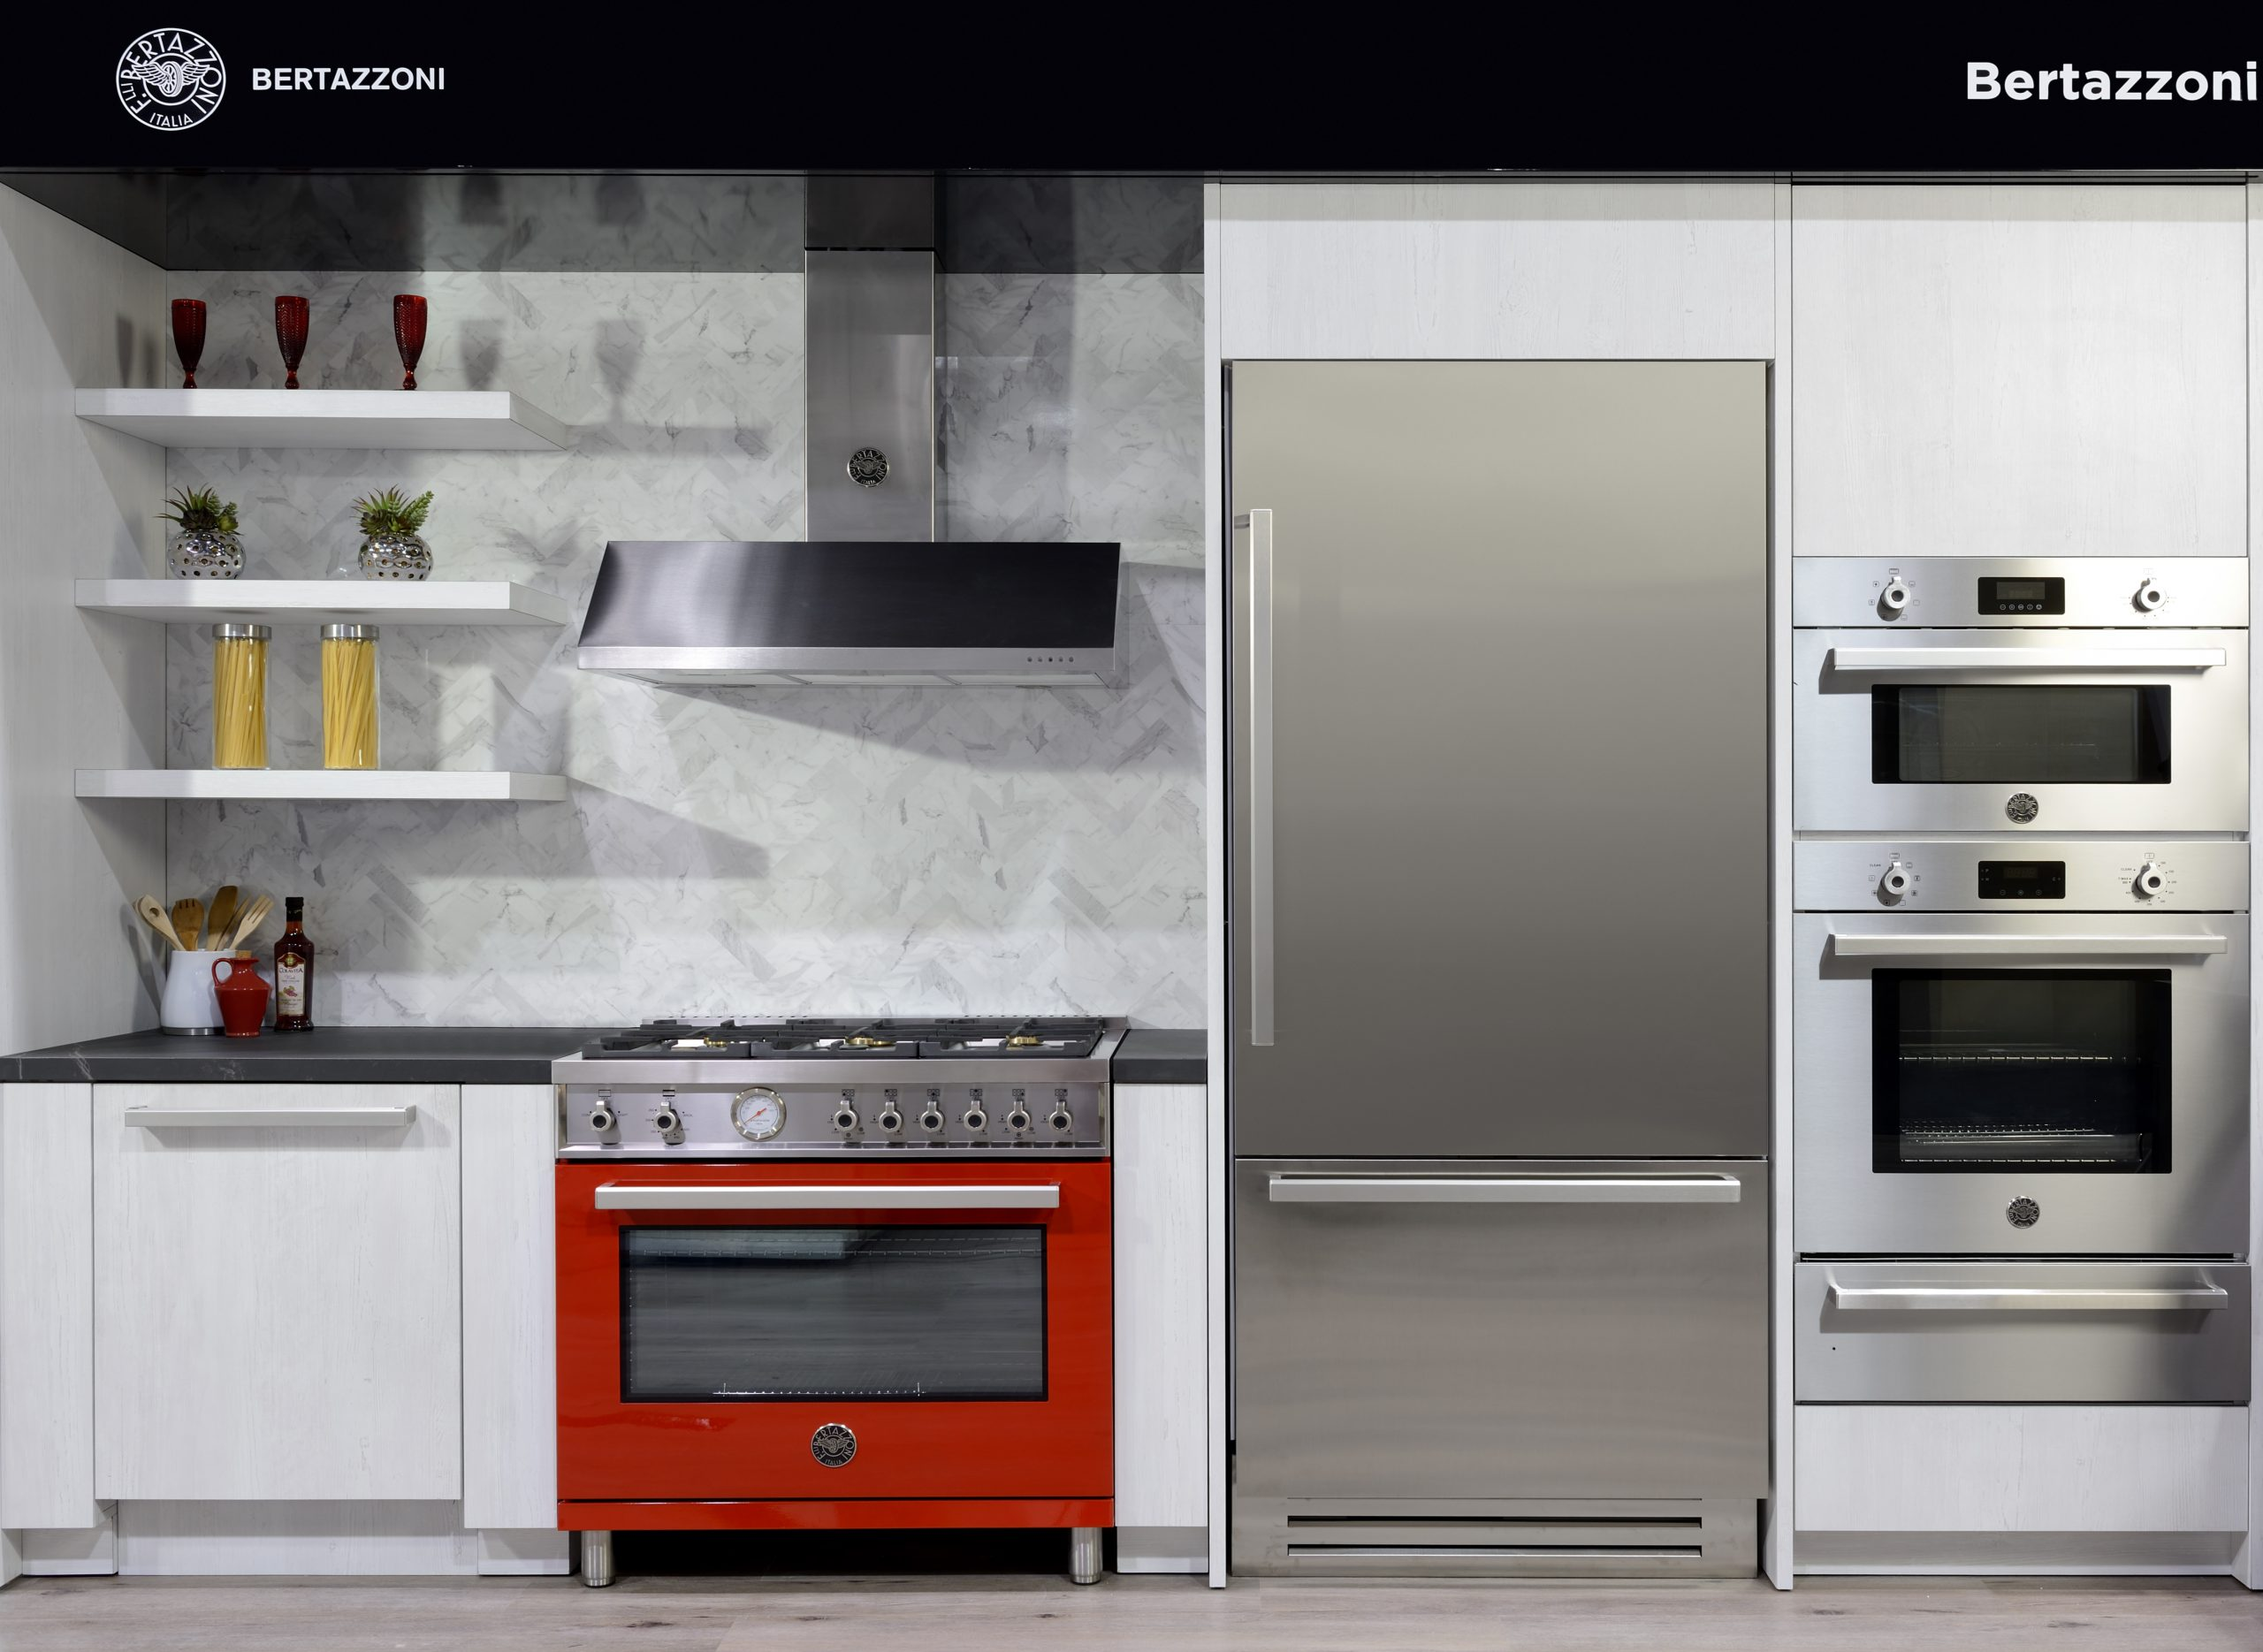 Luxury Appliance Choices for Condo Owners